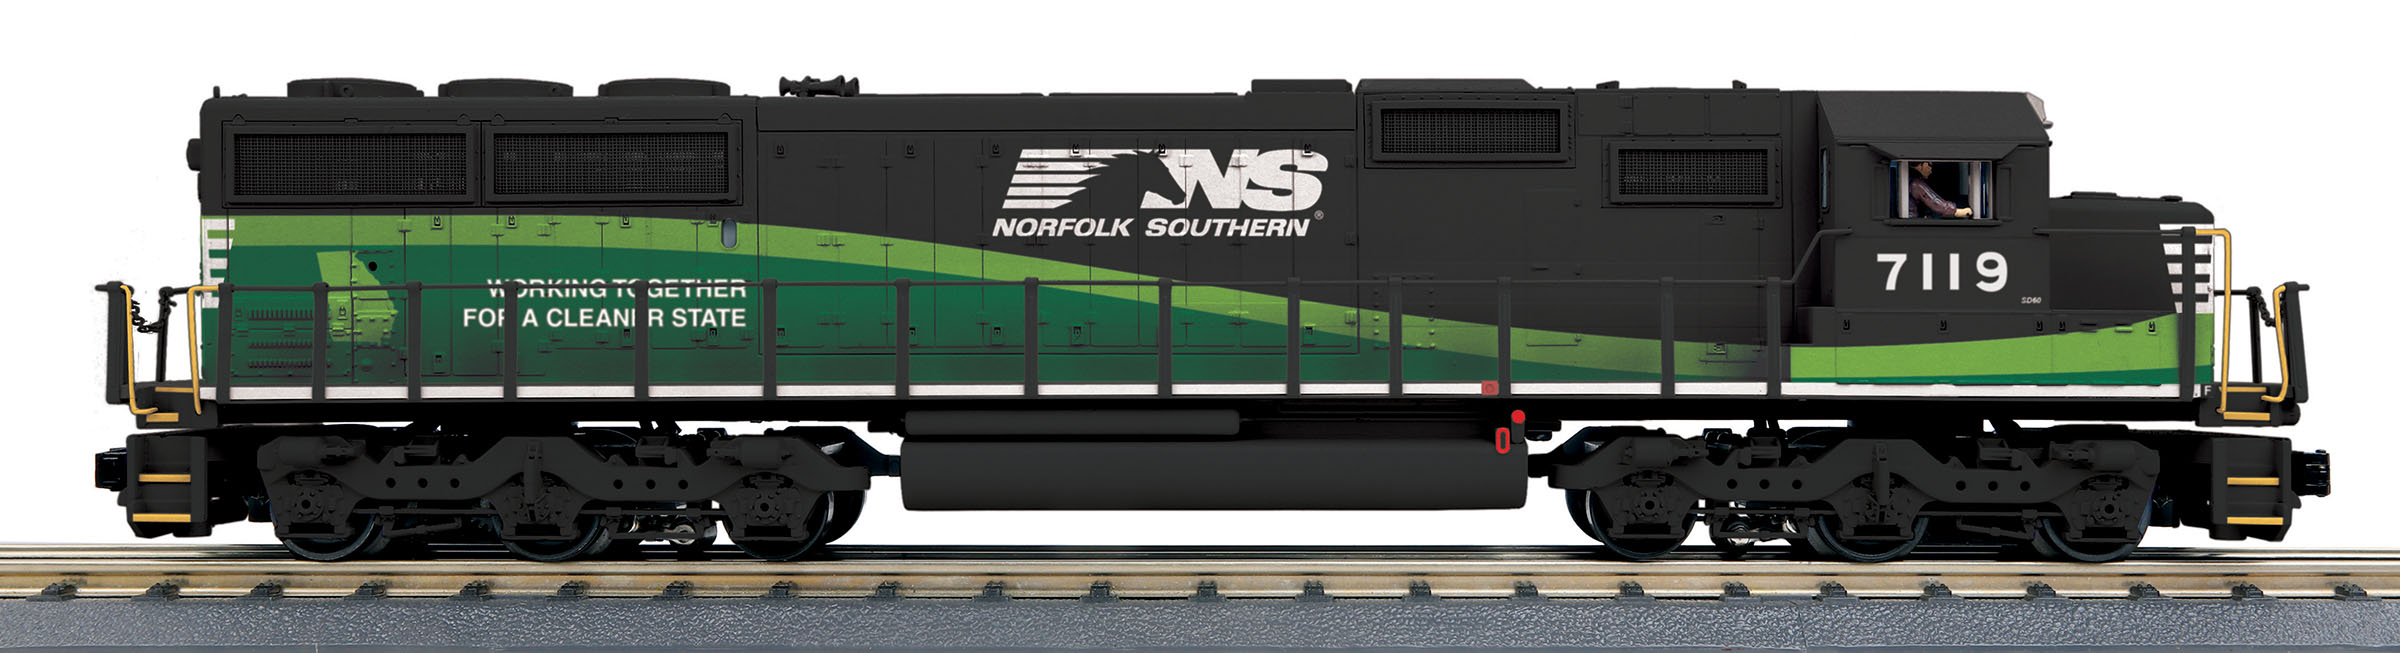 MTH30206161 MTH Electric Trains O SD60 w/Snd NS 7119 507-30206161